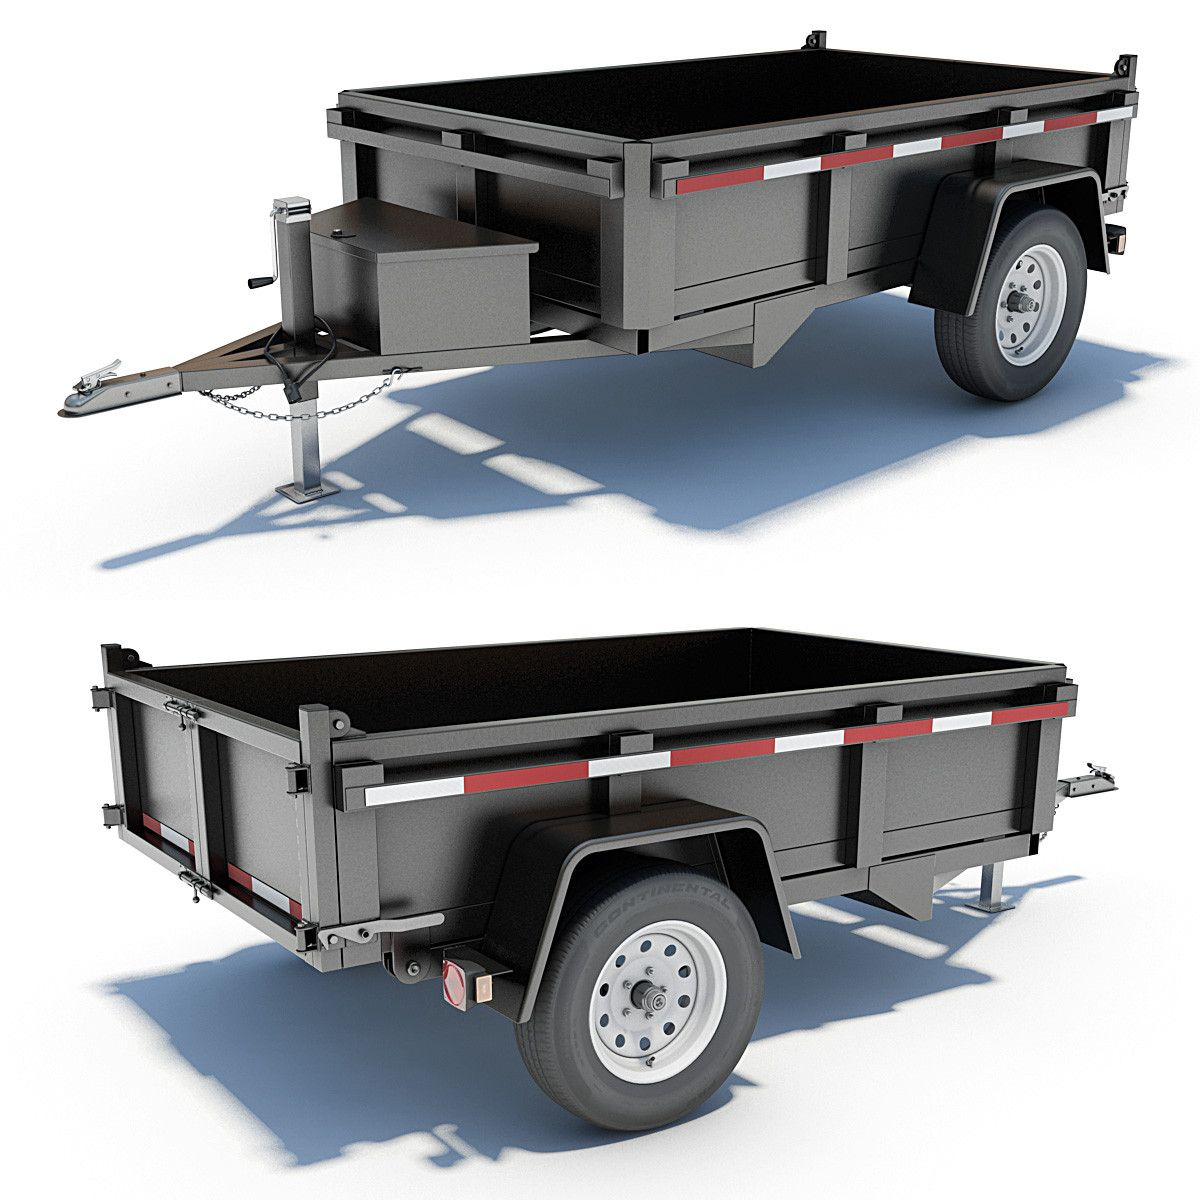 3d Model Utility Trailer Utility Trailer Homemade Trailer Box Trailer